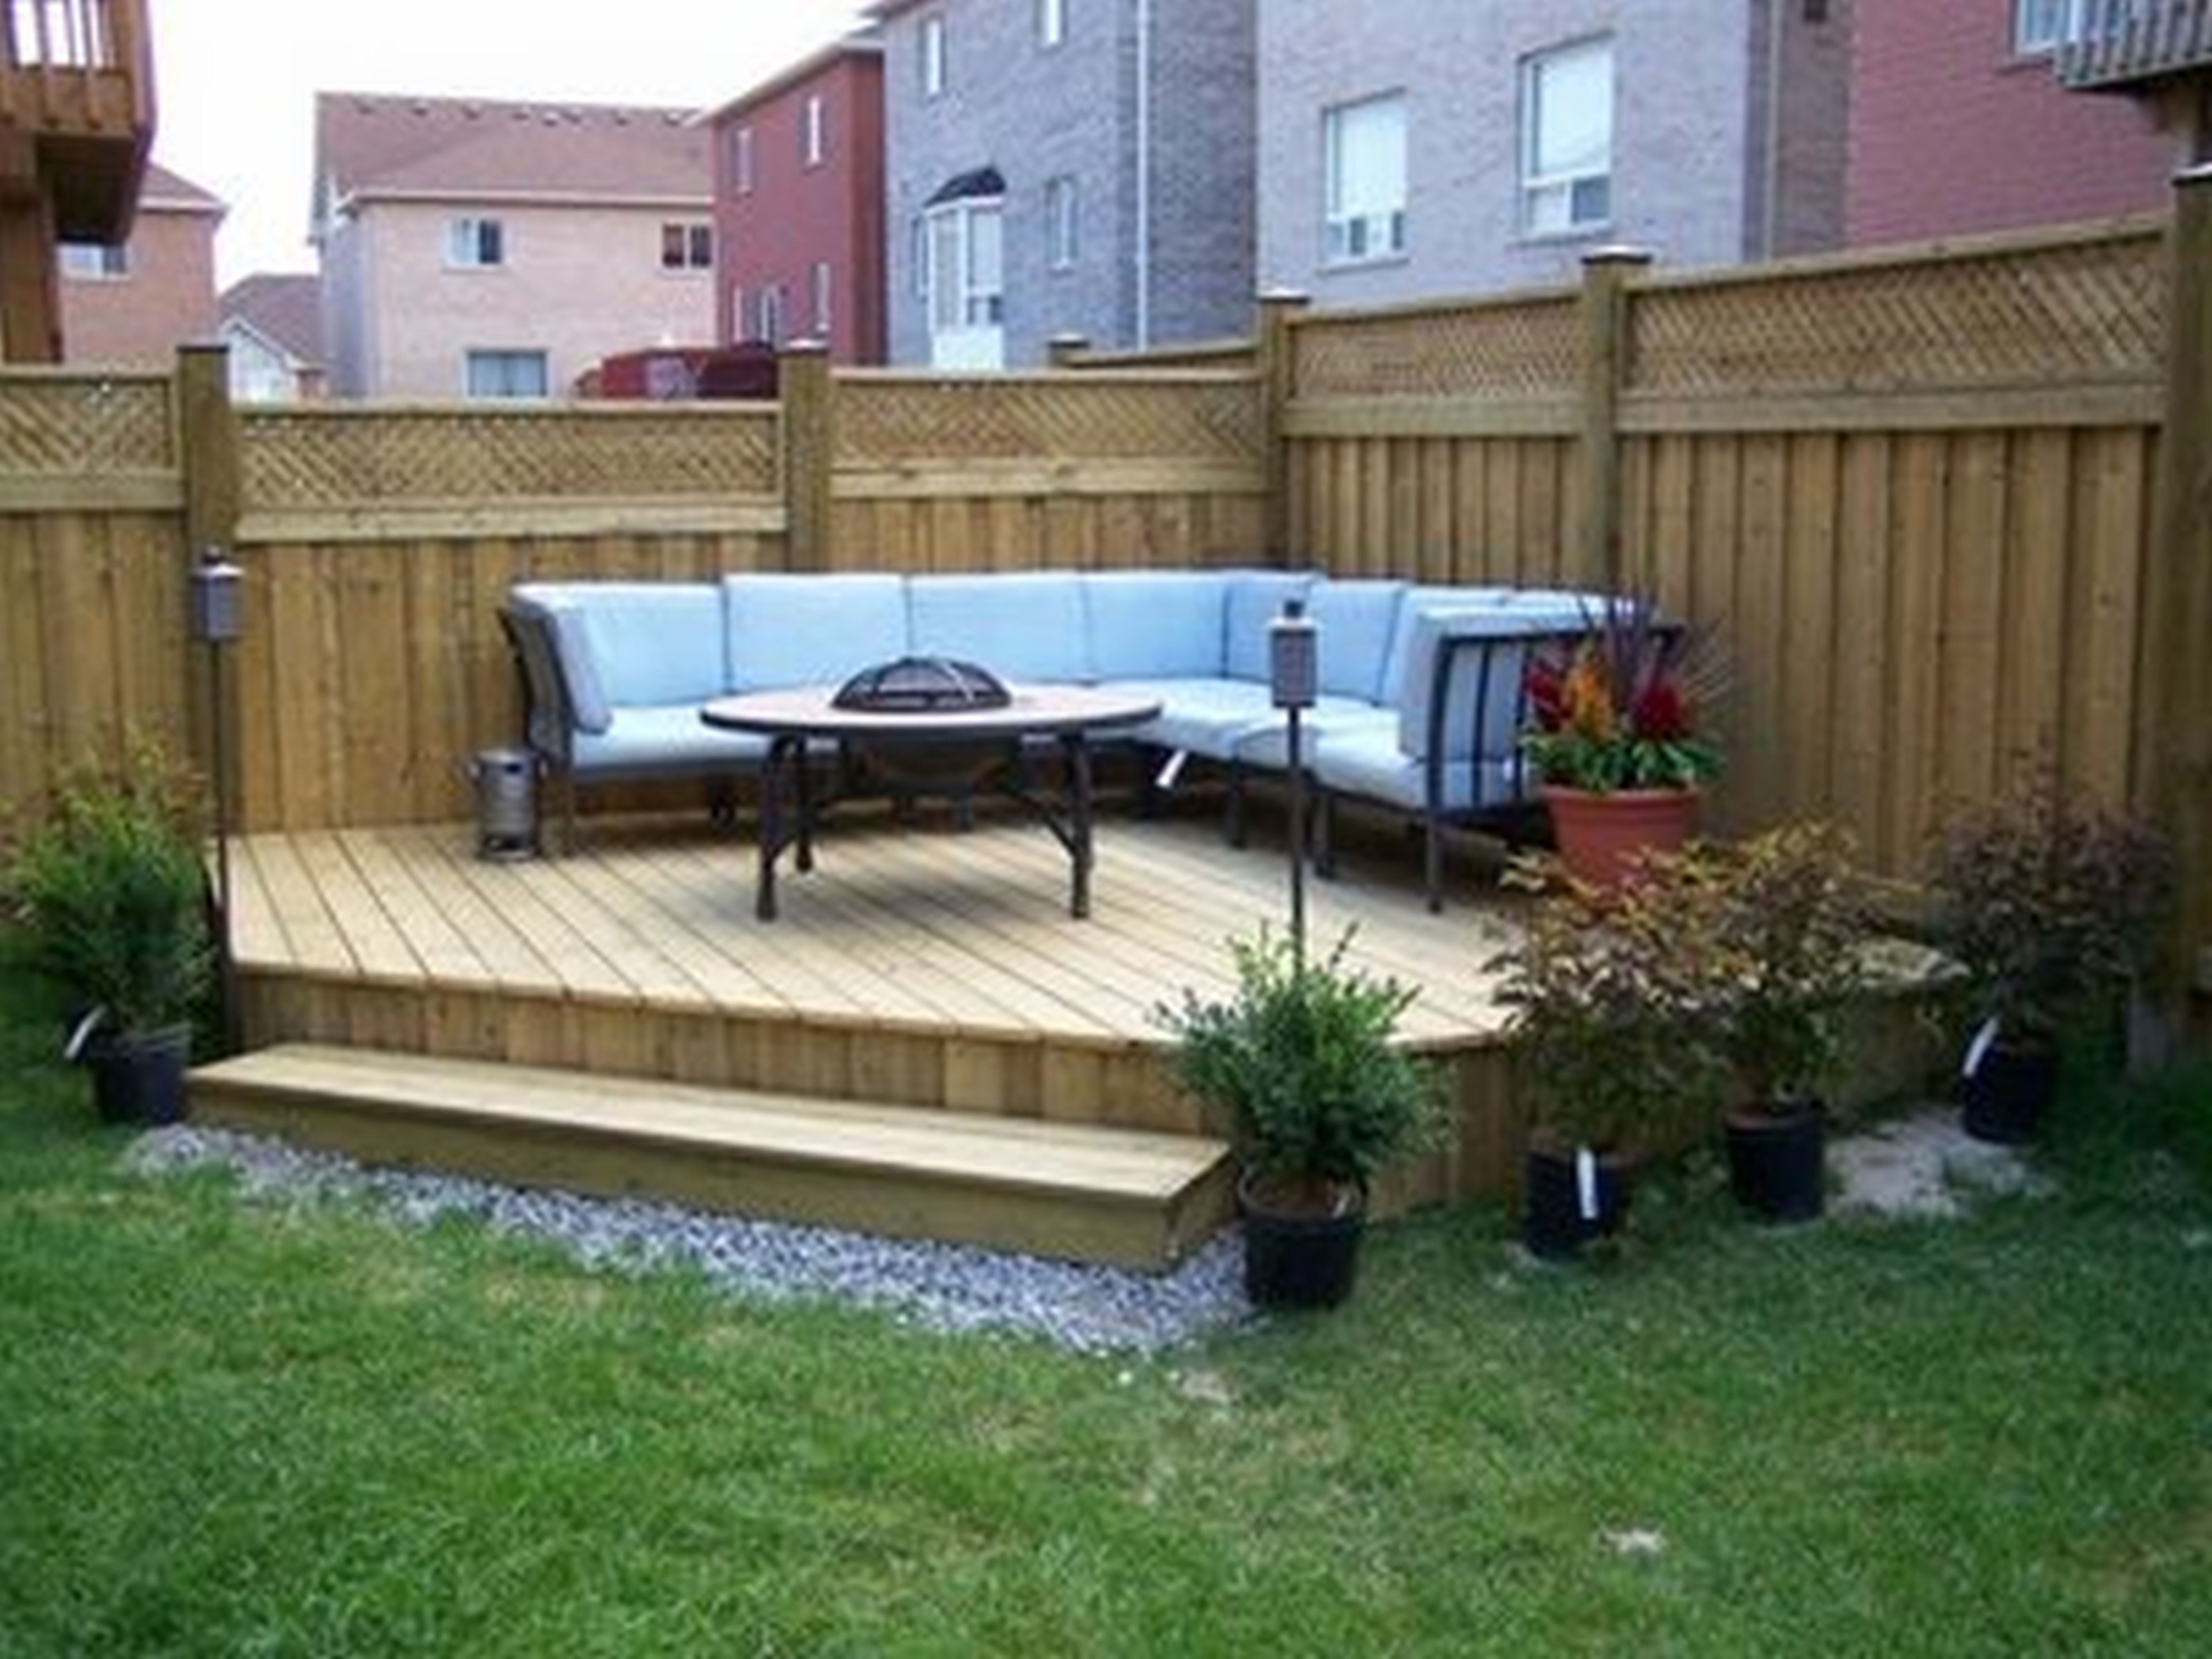 Small Deck Ideas For Small Backyards And Best Small Deck Ideas intended for 10 Some of the Coolest Ways How to Craft Small Deck Ideas For Small Backyards